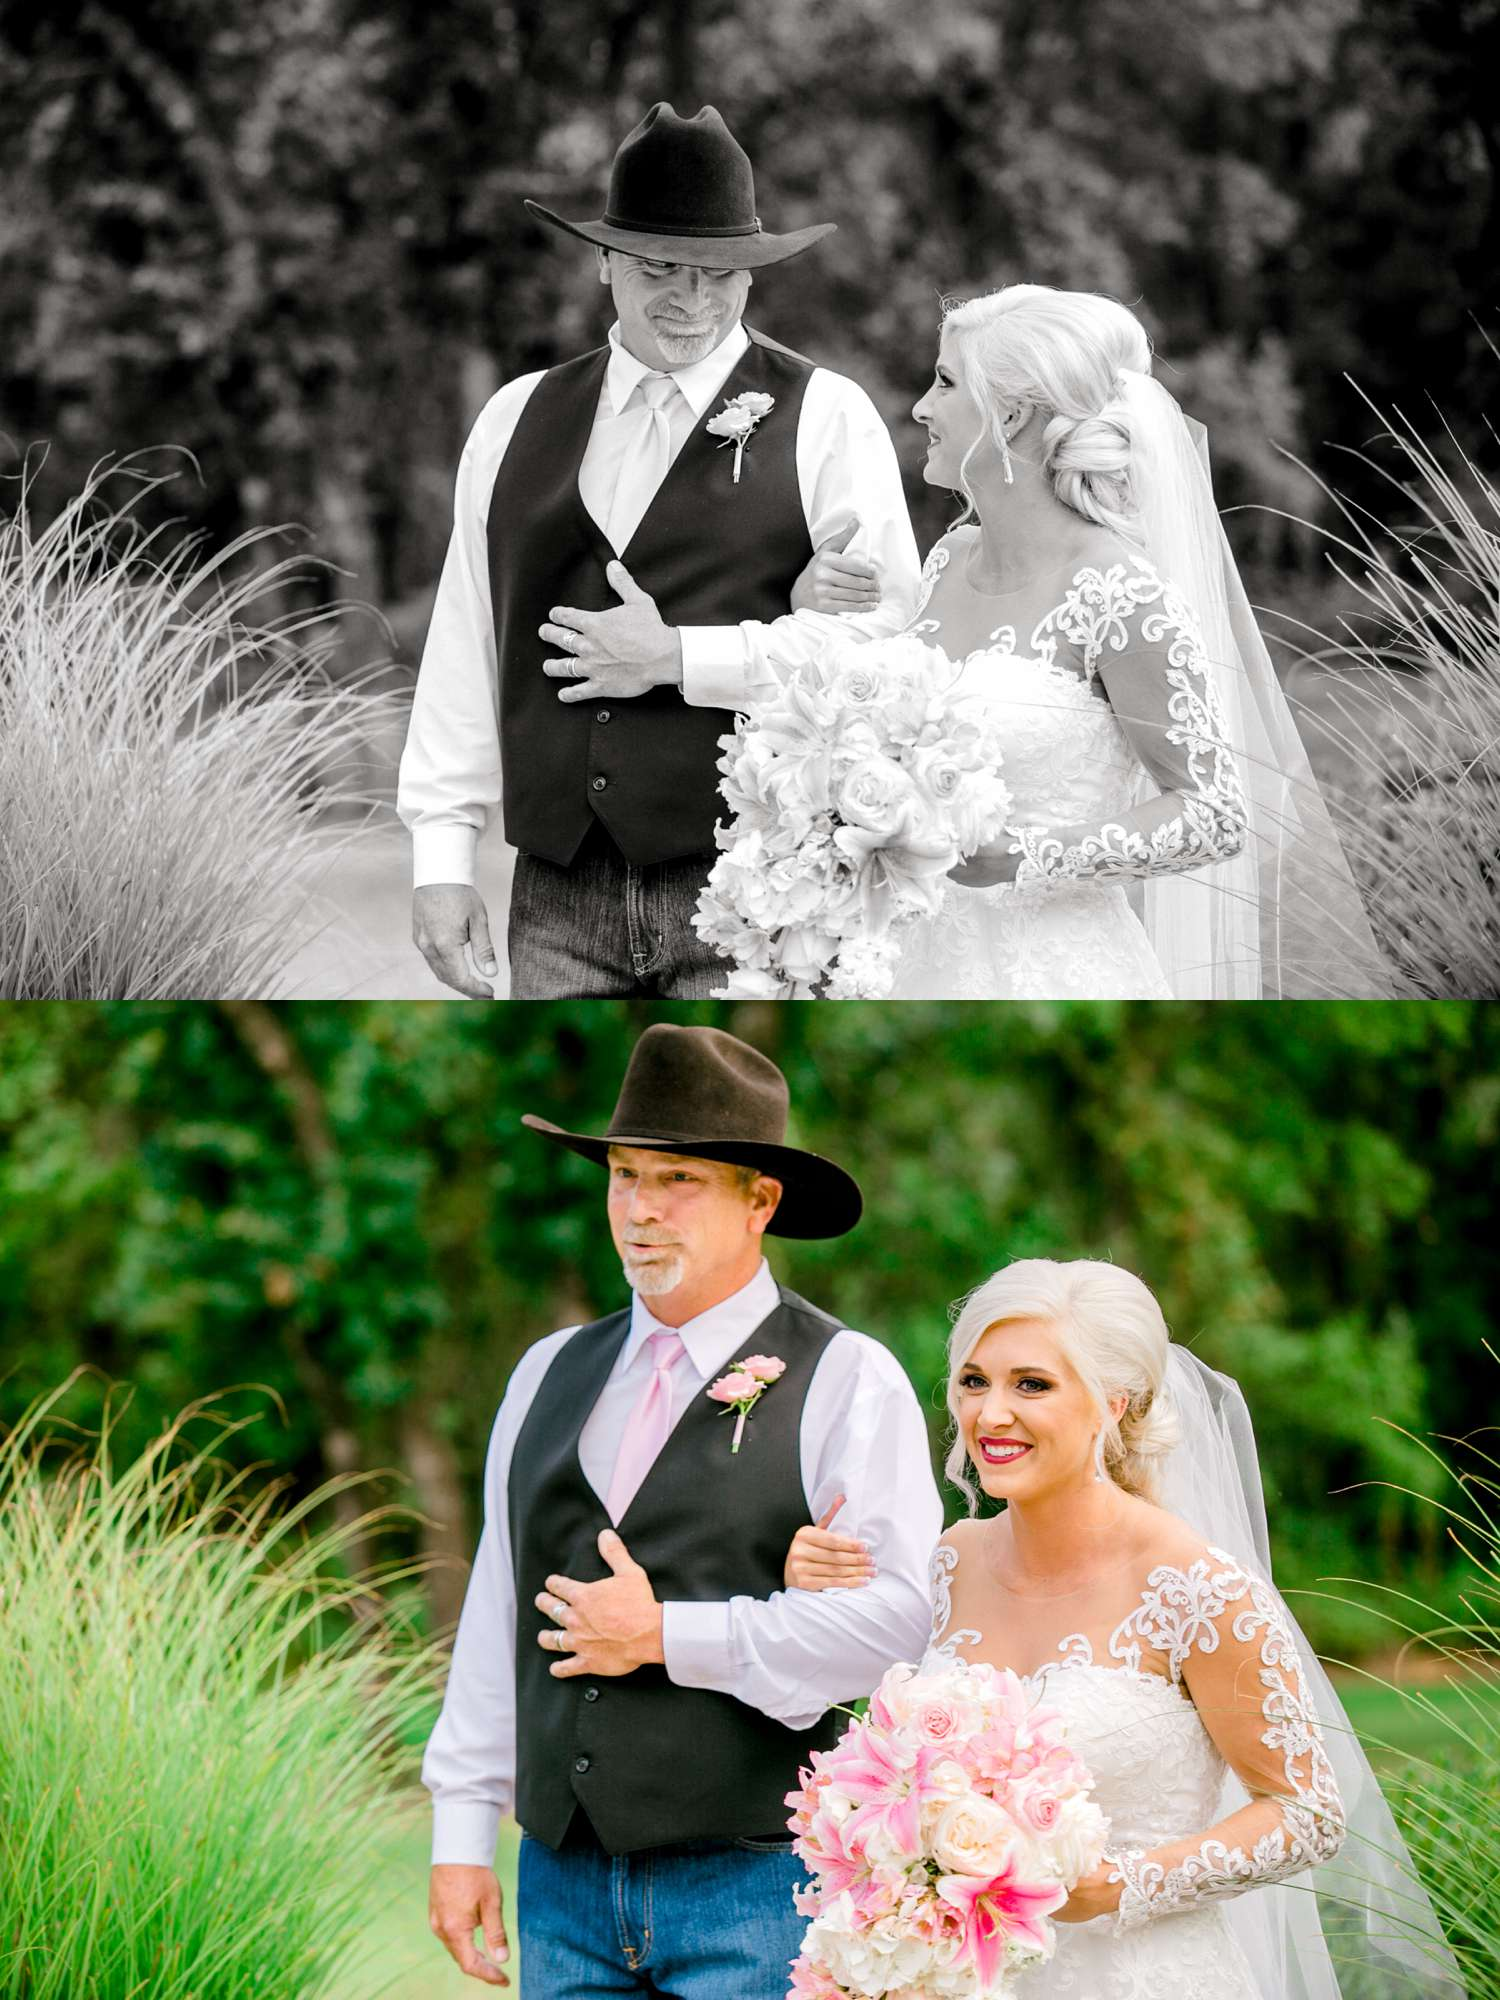 JESSICA+LYLE+NEEL+THE_SPRINGS_EVENTS_WEDDING_OKLAHOMA_ALLEEJ_PHOTOGRAPHER_0050.jpg